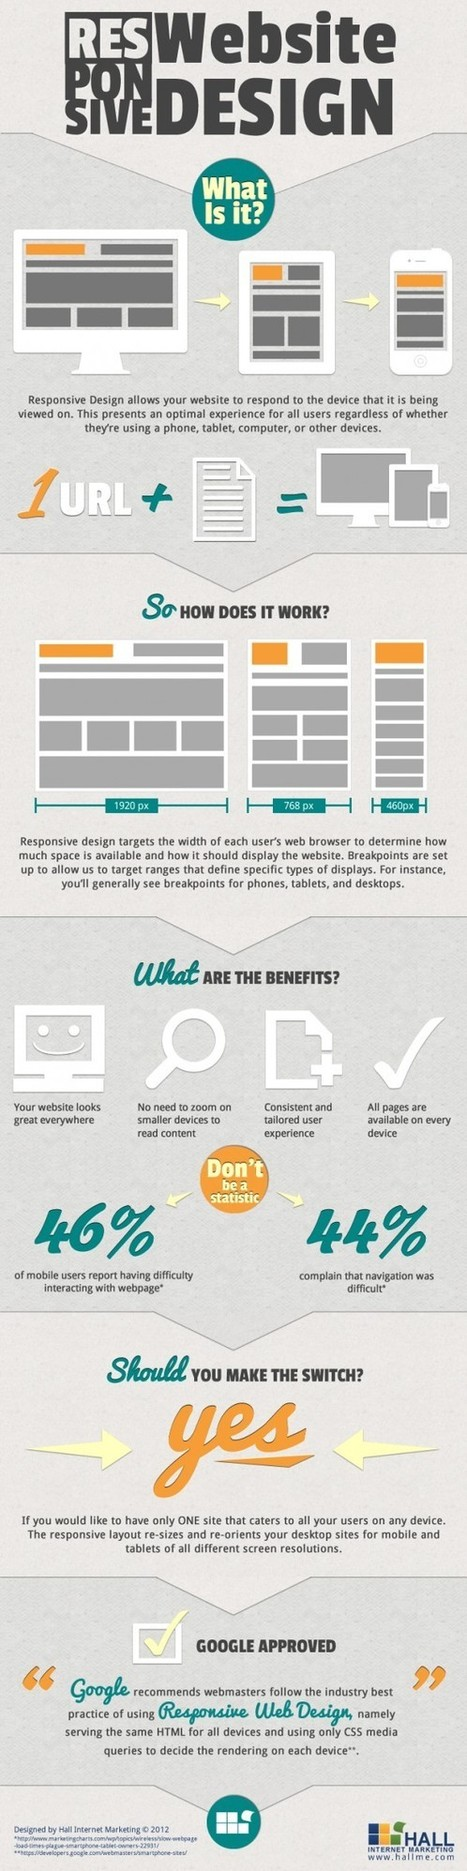 What Actually Responsive Website Design is? [Infographic] | Infographic _for students | Scoop.it